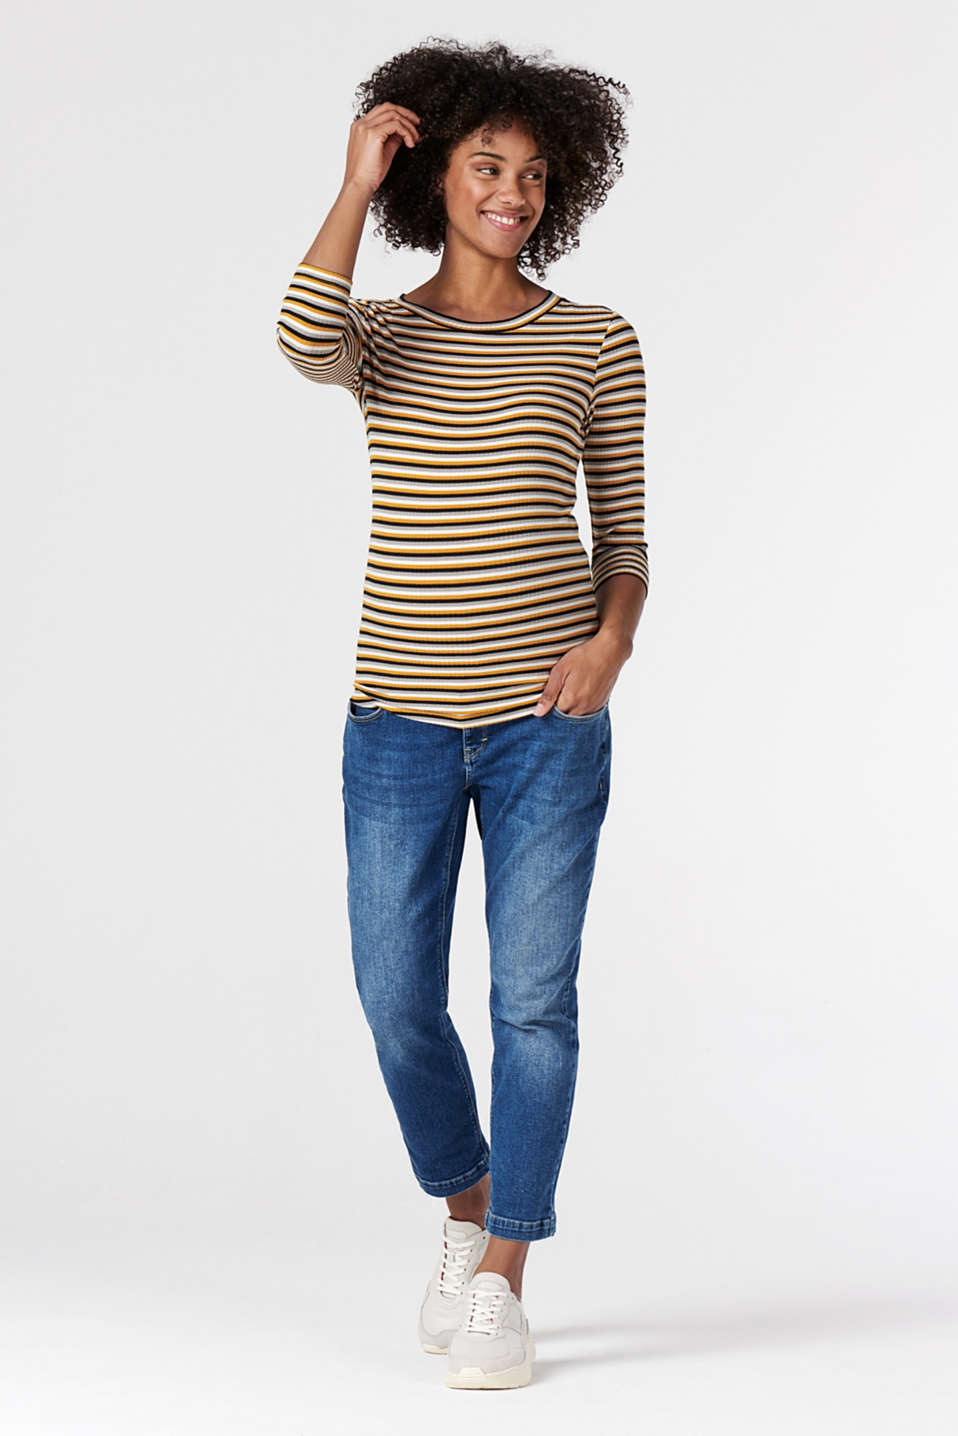 Esprit - striped T-shirt